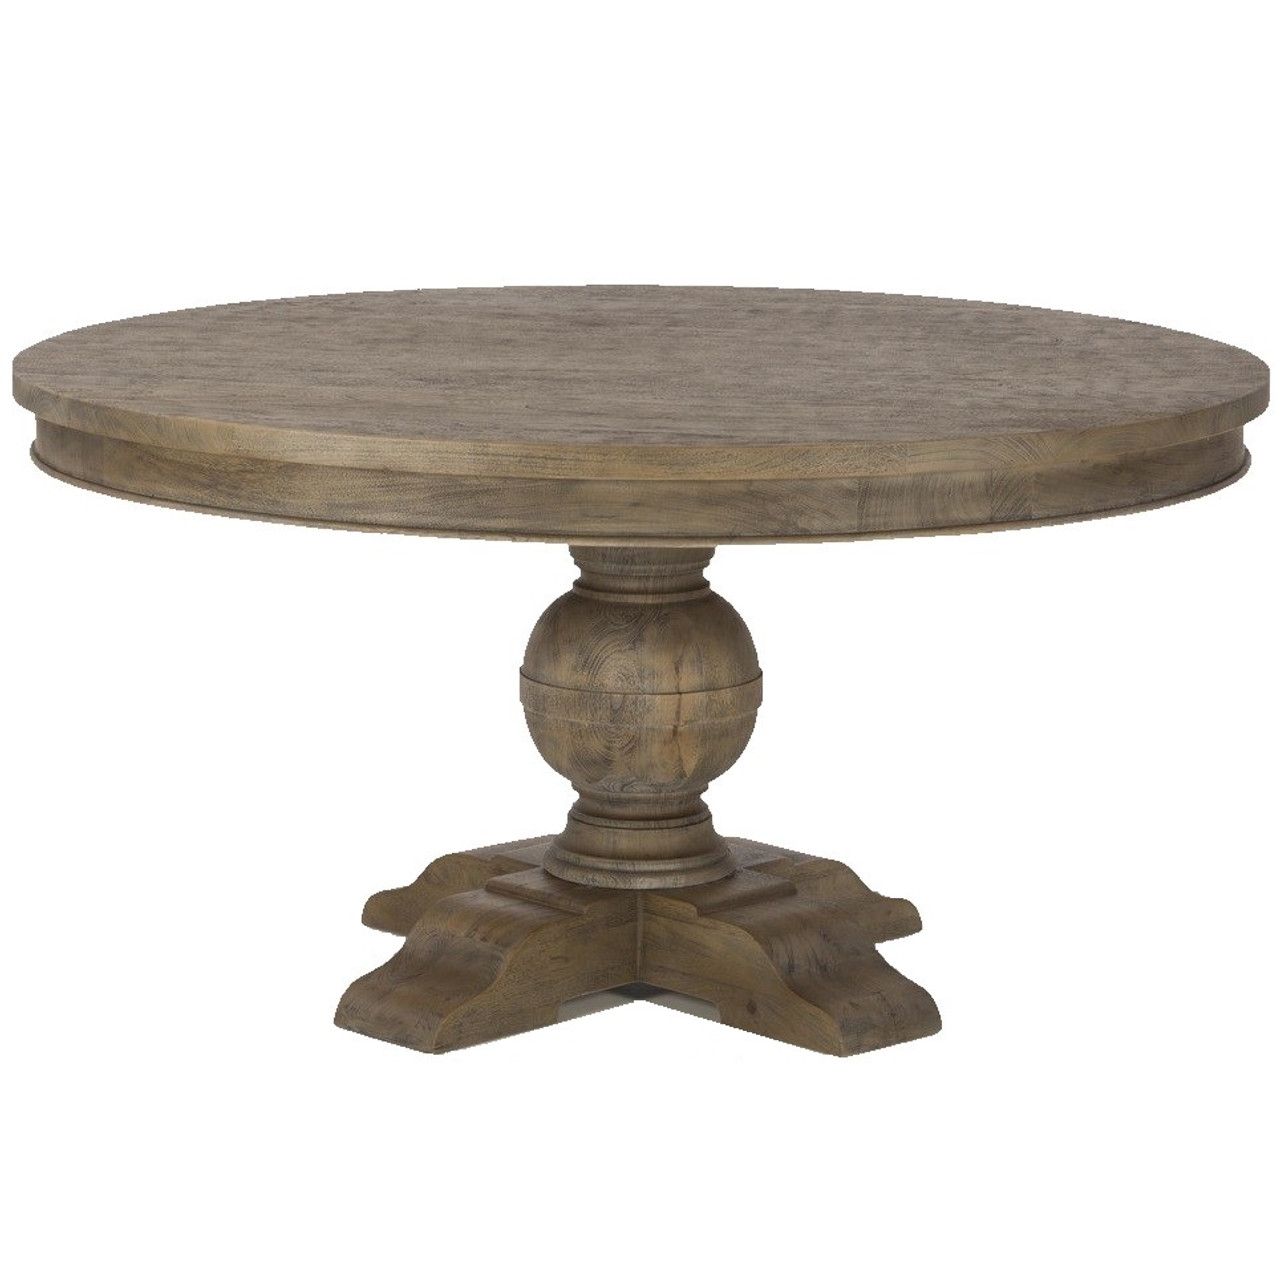 Picture of: French Urn Solid Wood Pedestal Round Dining Table 54 Zin Home